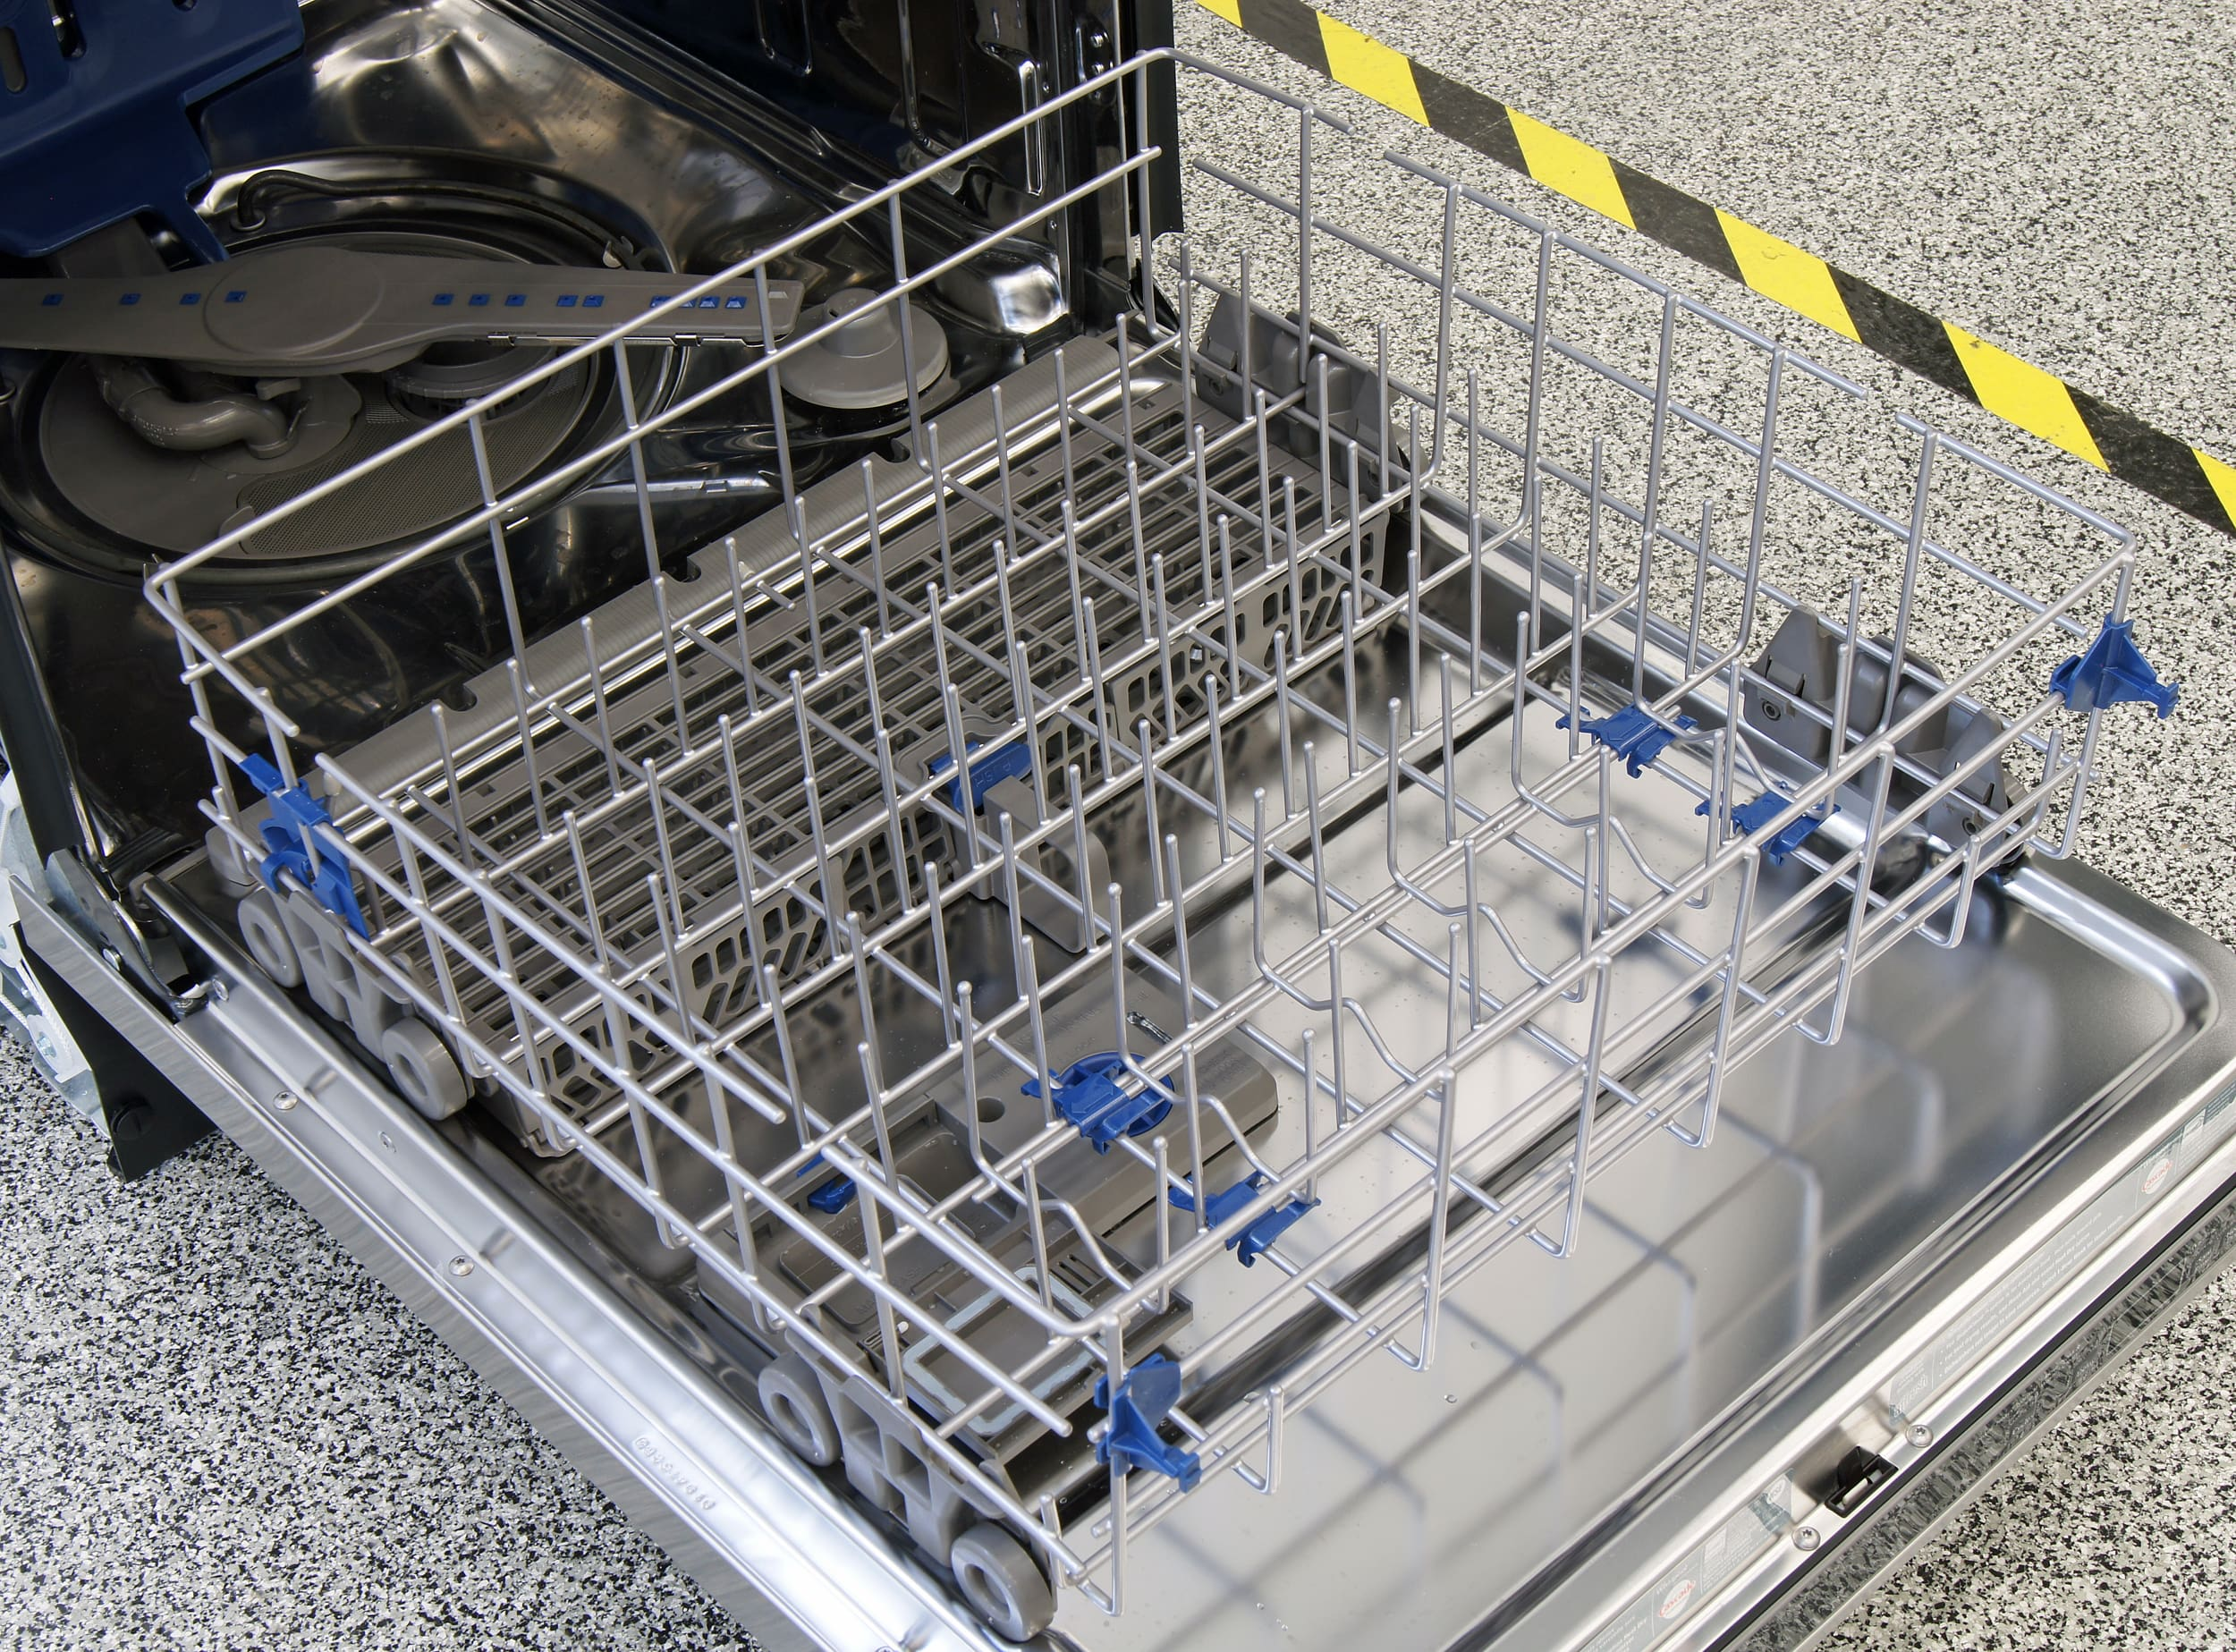 Whirlpool Gold Wdt920sadm Dishwasher Review Reviewed Com